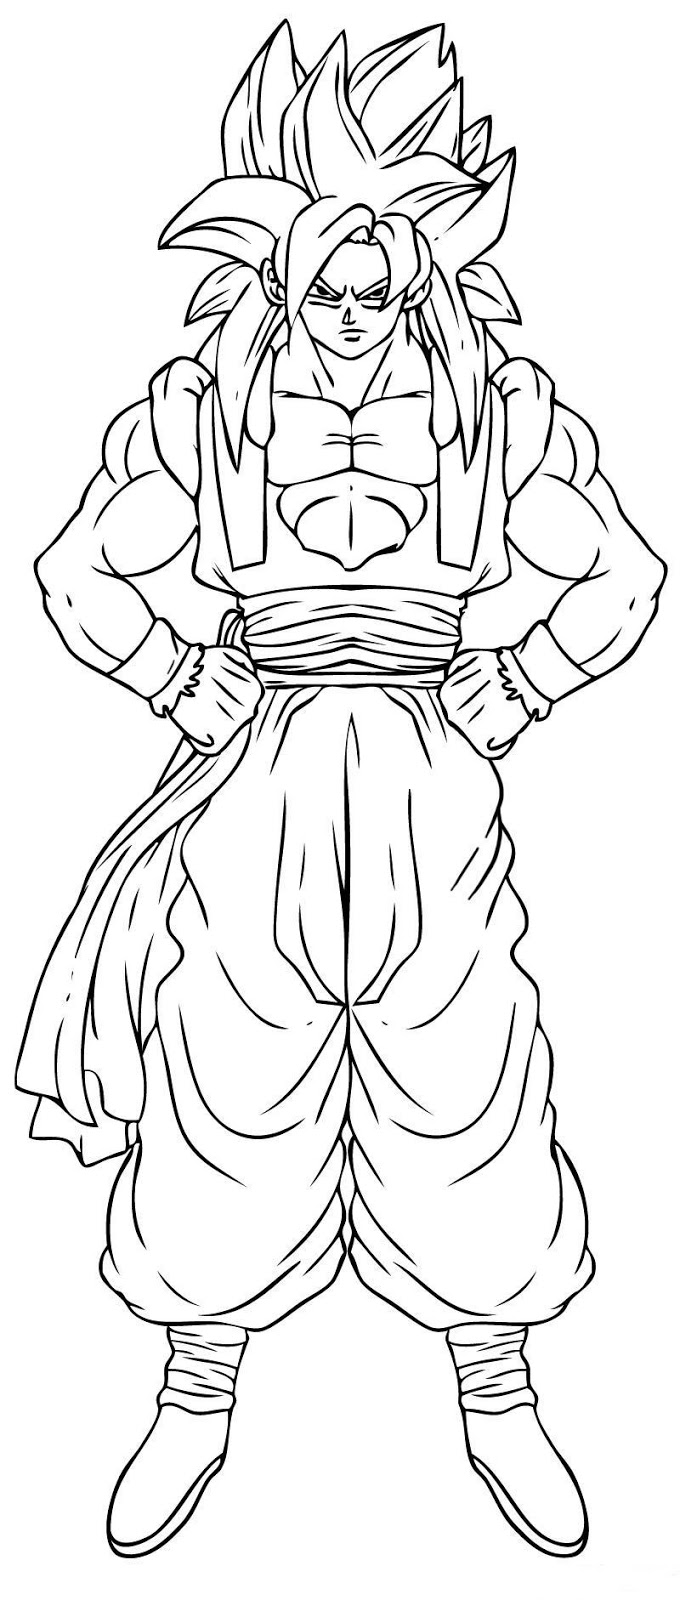 Free Goku Fase 2 Coloring Pages